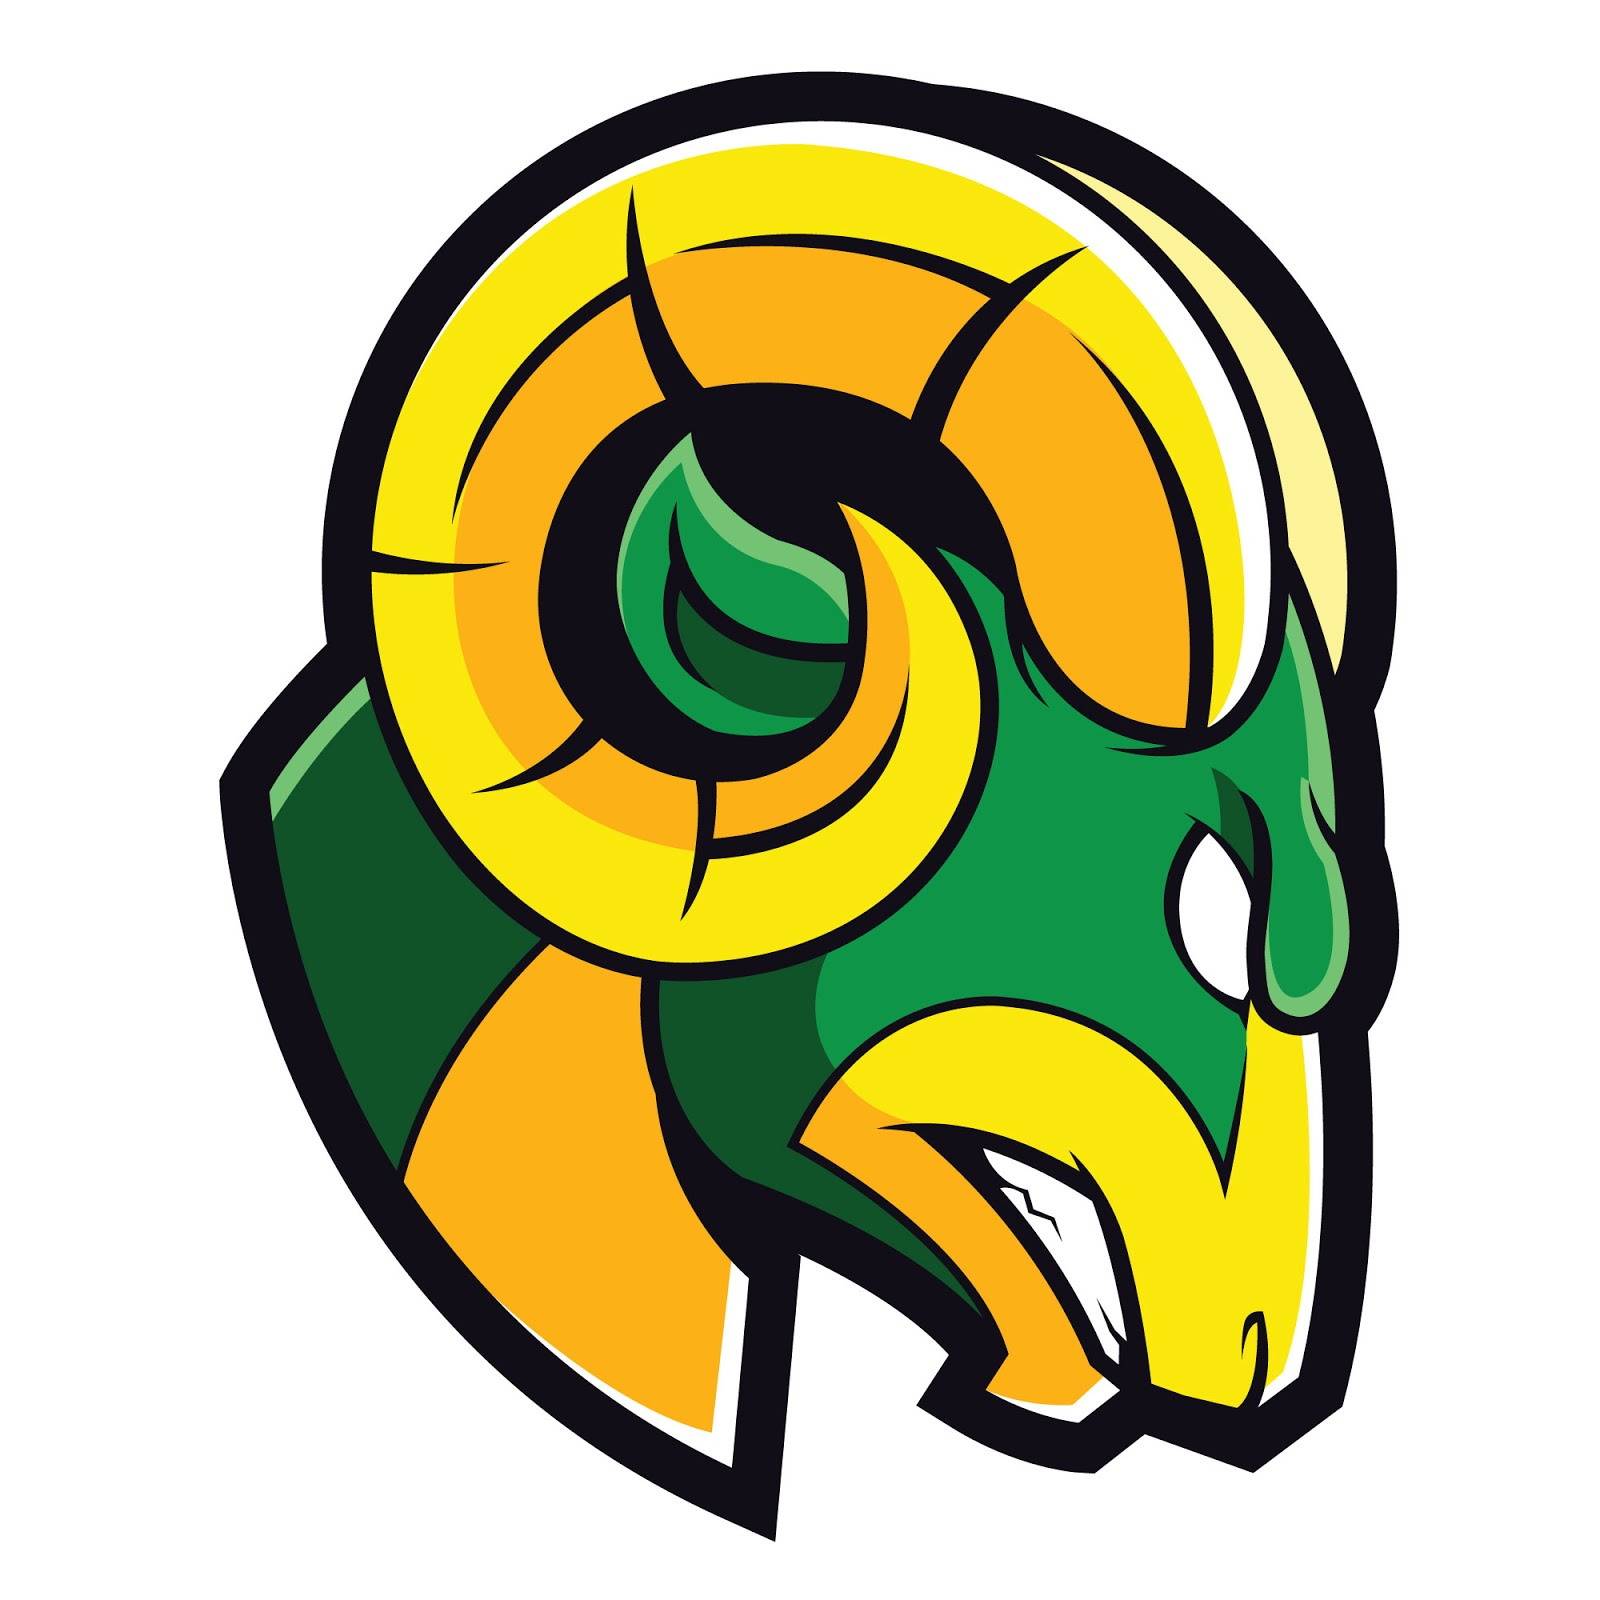 Ram Sports Logo Free Download Vector CDR, AI, EPS and PNG Formats